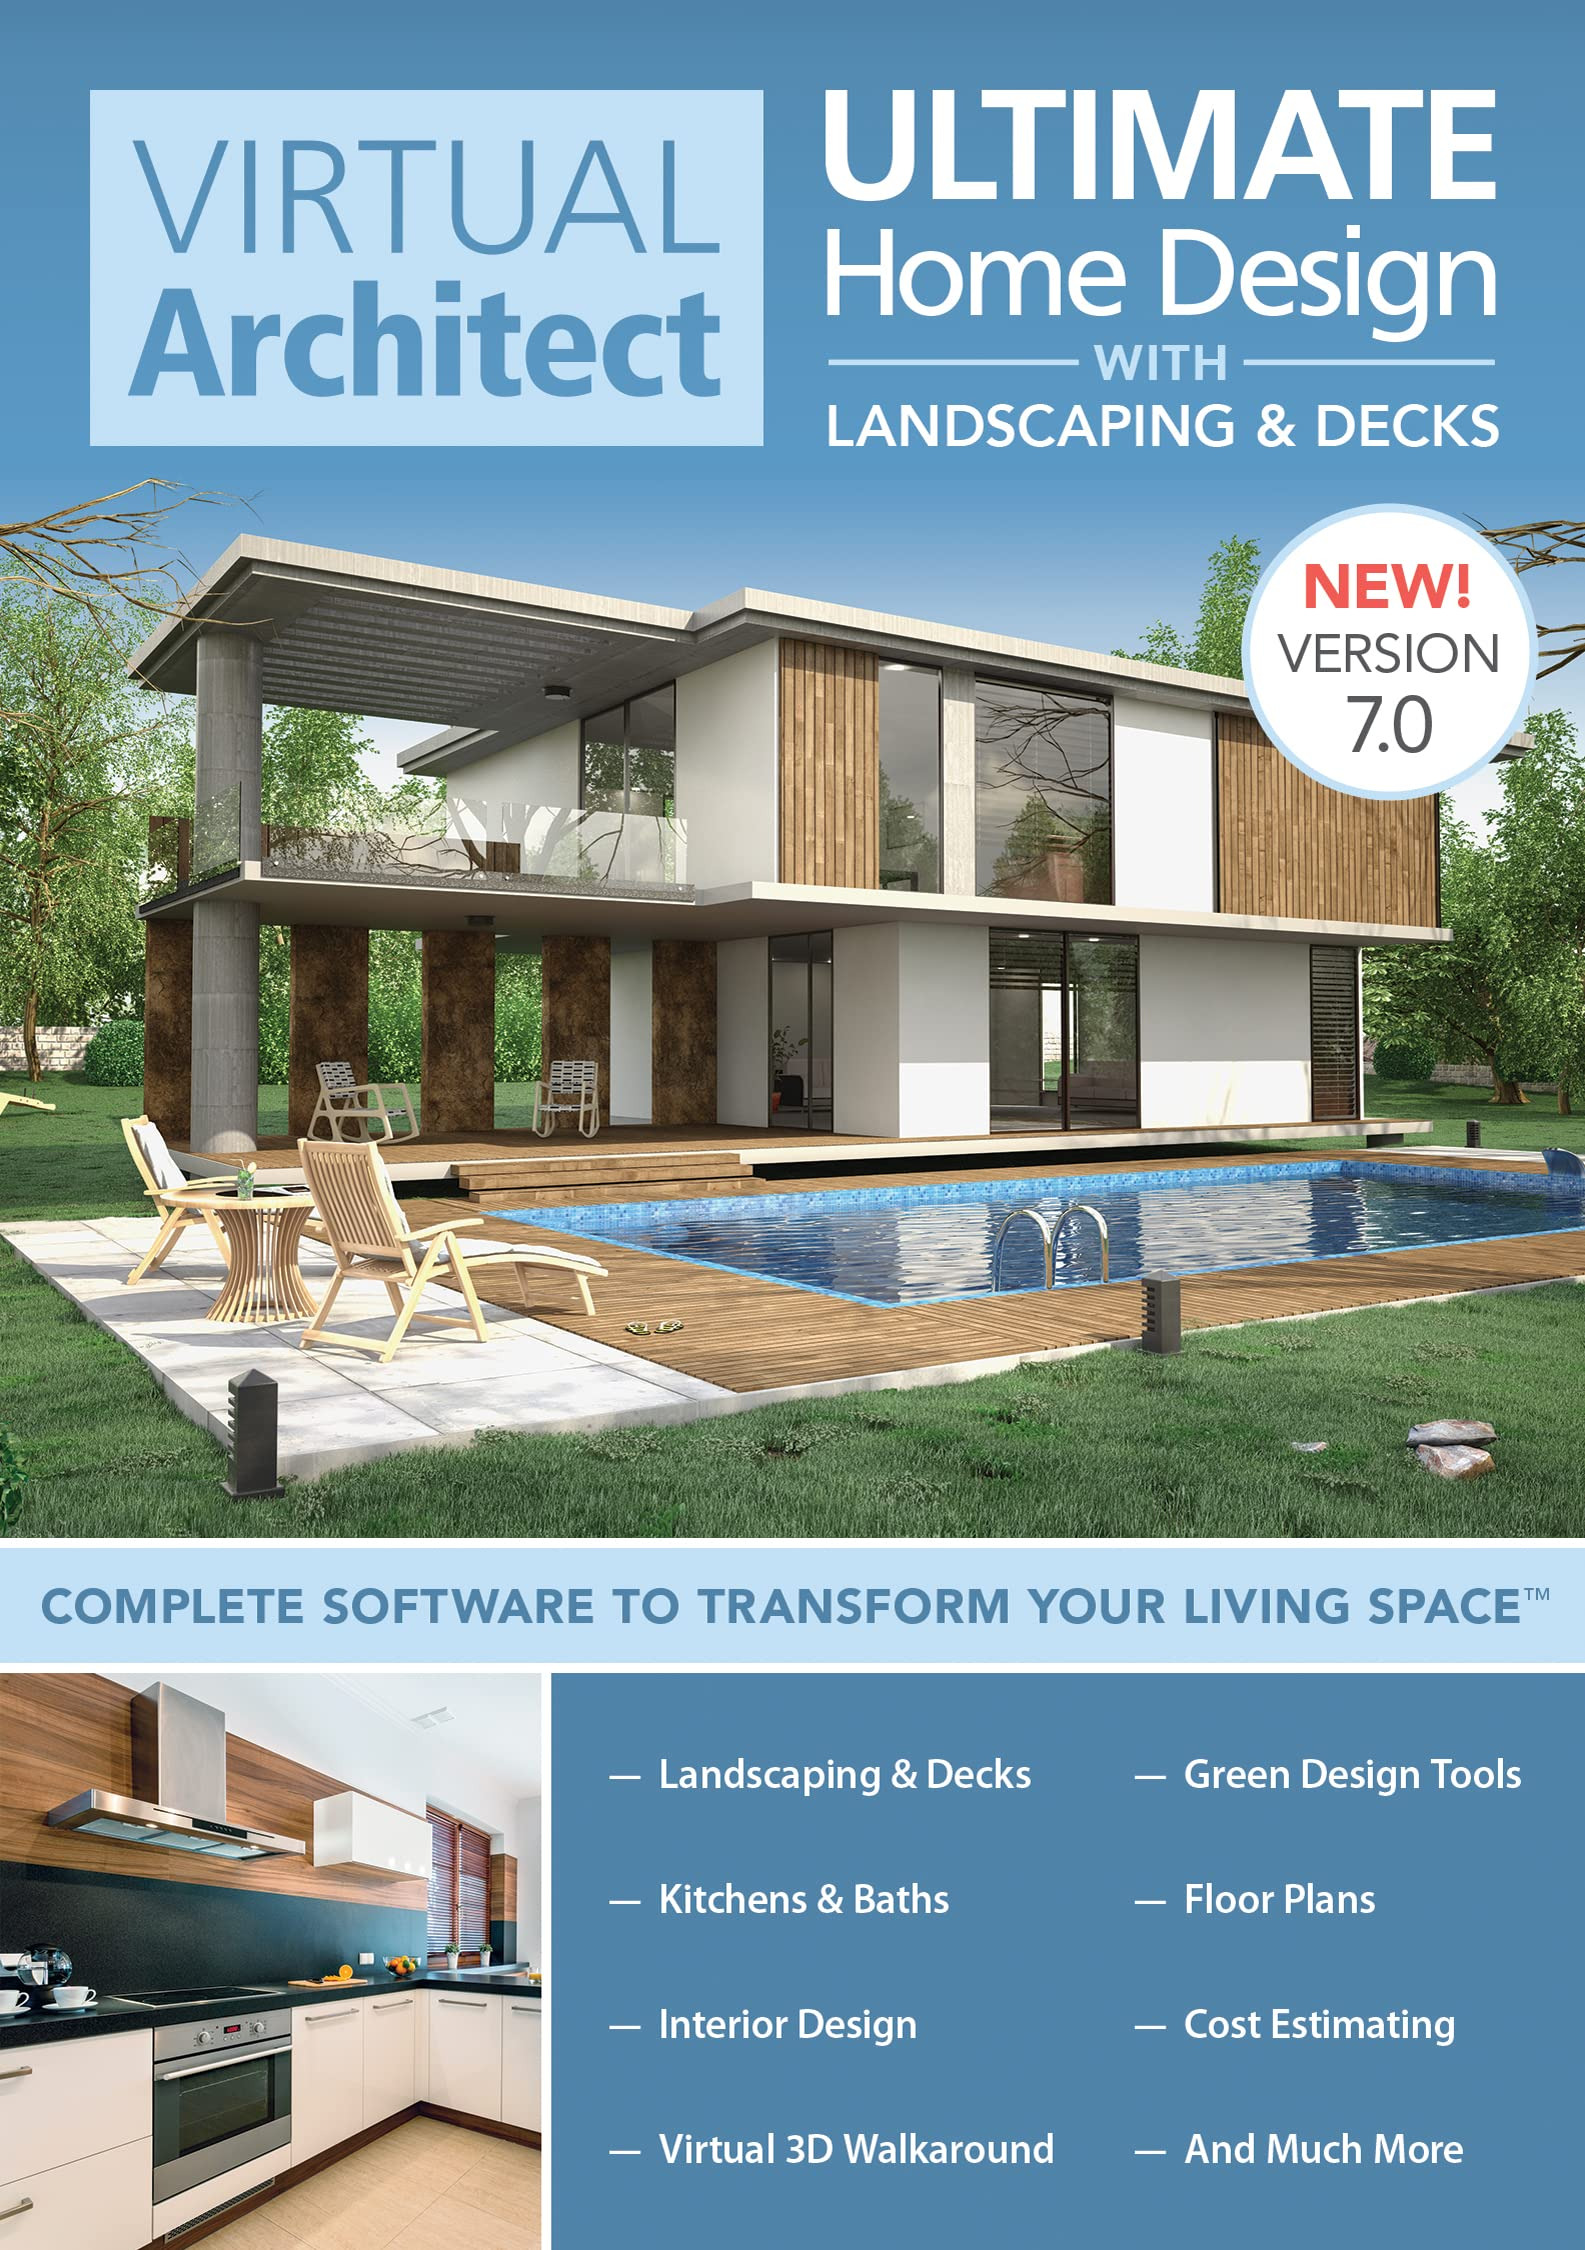 House Plan software Review New Virtual Architect Ultimate Home Design with Landscaping and Decks 7 0 [download]